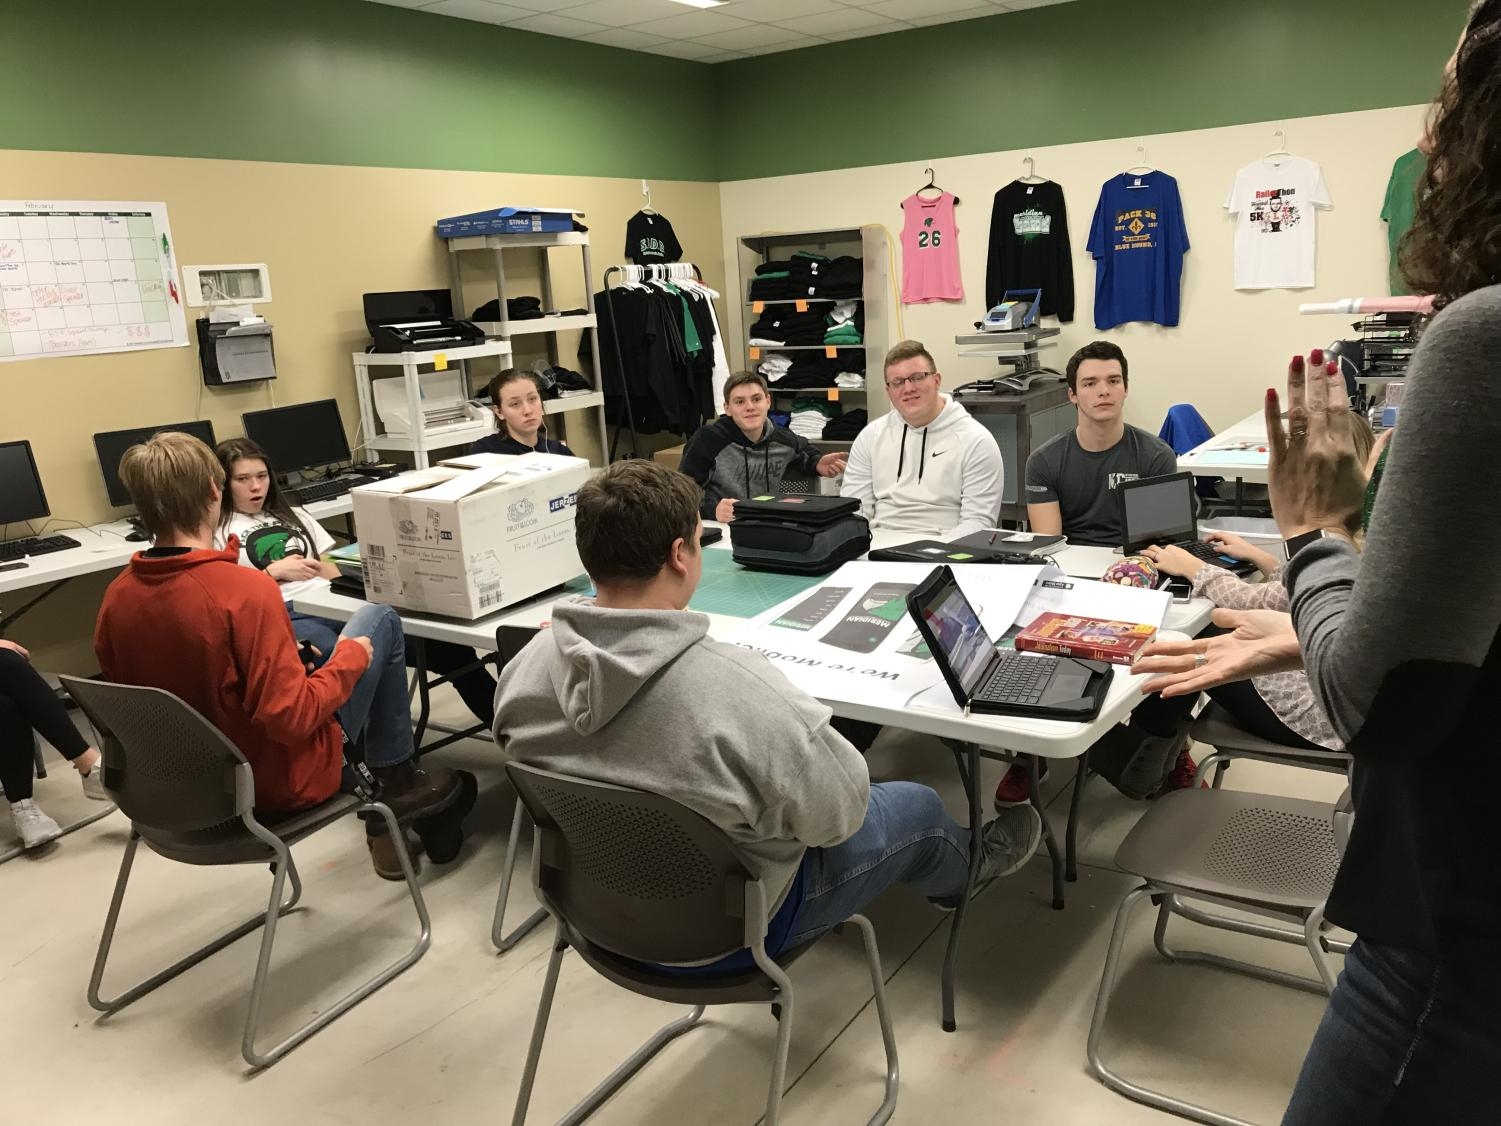 The entrepreneurship class plans to attend the DAX trade show at Tinley Park, IL. The students thought it'd be a great idea to put the extra money they make from shirt sales to use.